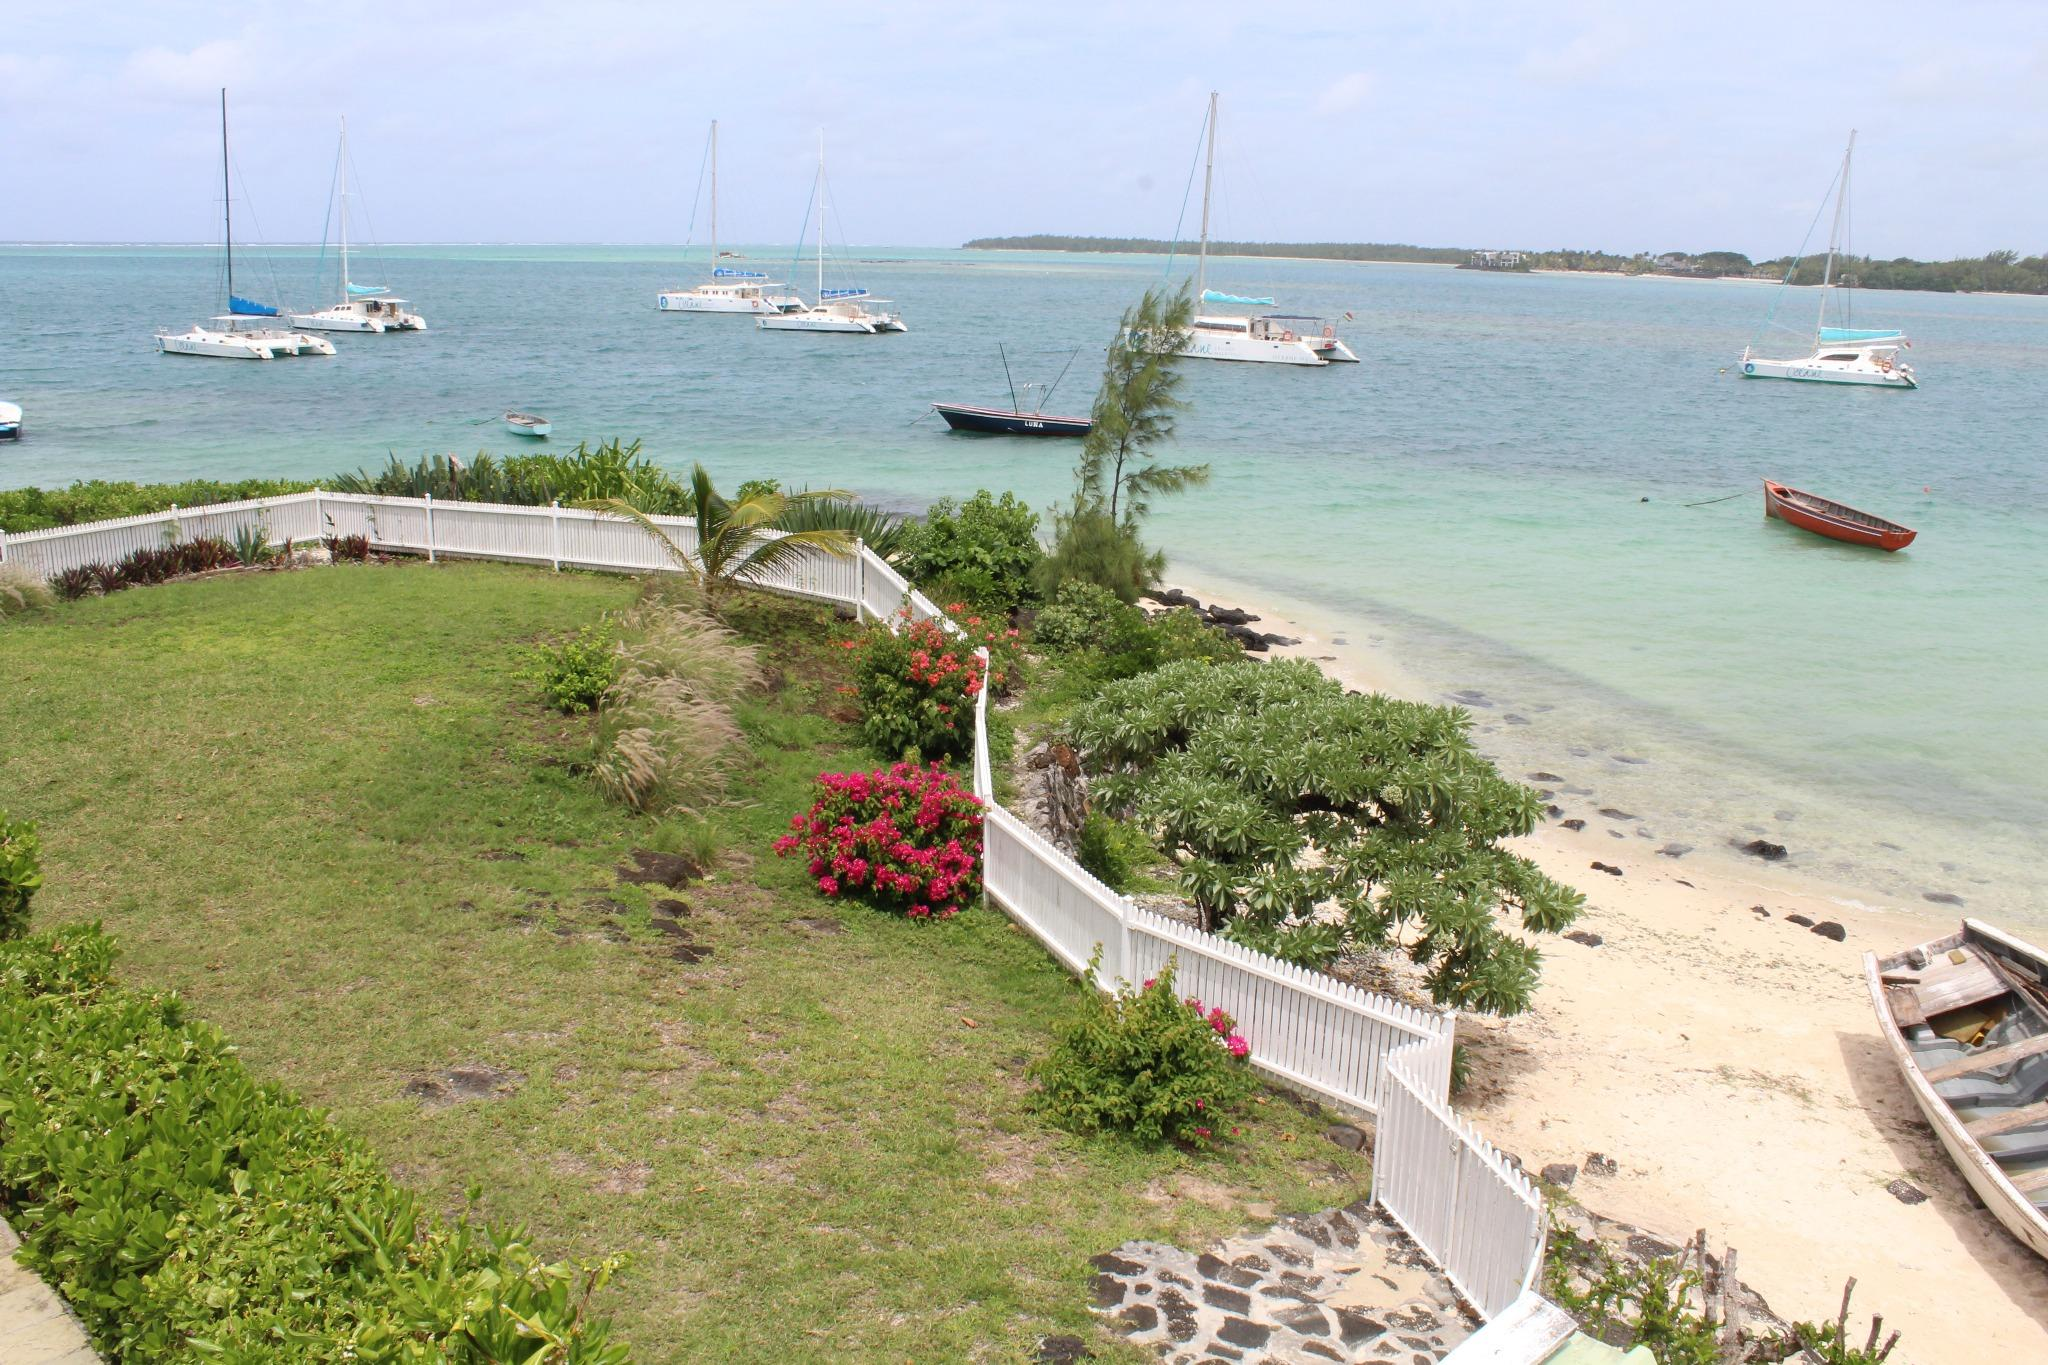 FOR SALE – Beachfront furnished and equipped house of 258 m2 on a leasehold land in Trou d'Eau Douce